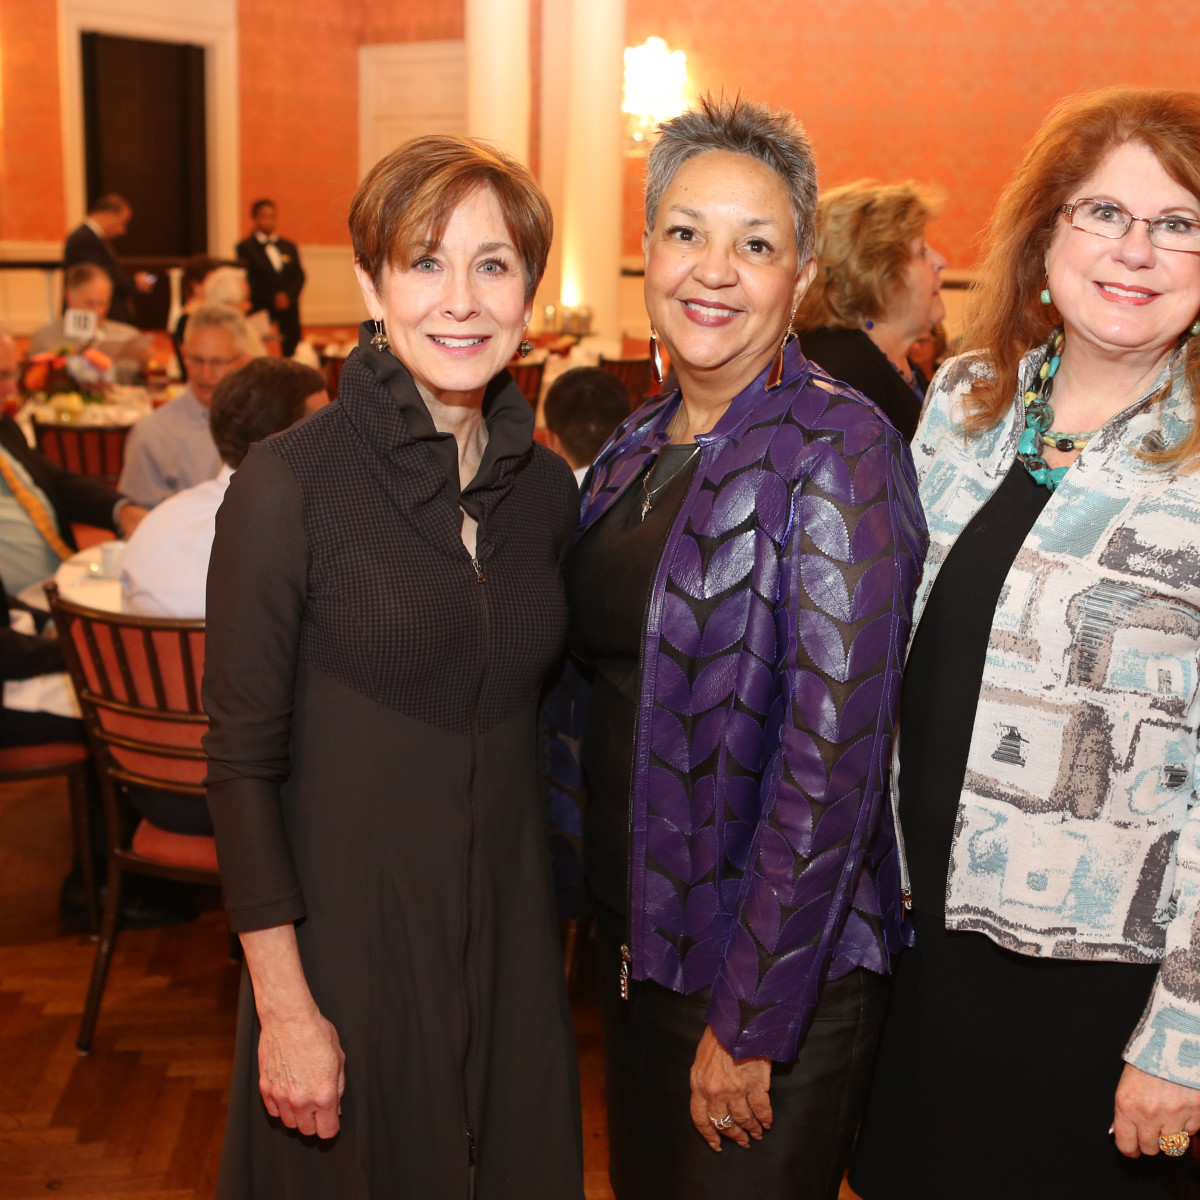 News, Shelby, Houston Museum of Natural Science Luncheon, Oct. 2015, Amy Chaisson, Carla Dickerson, Joni Baird